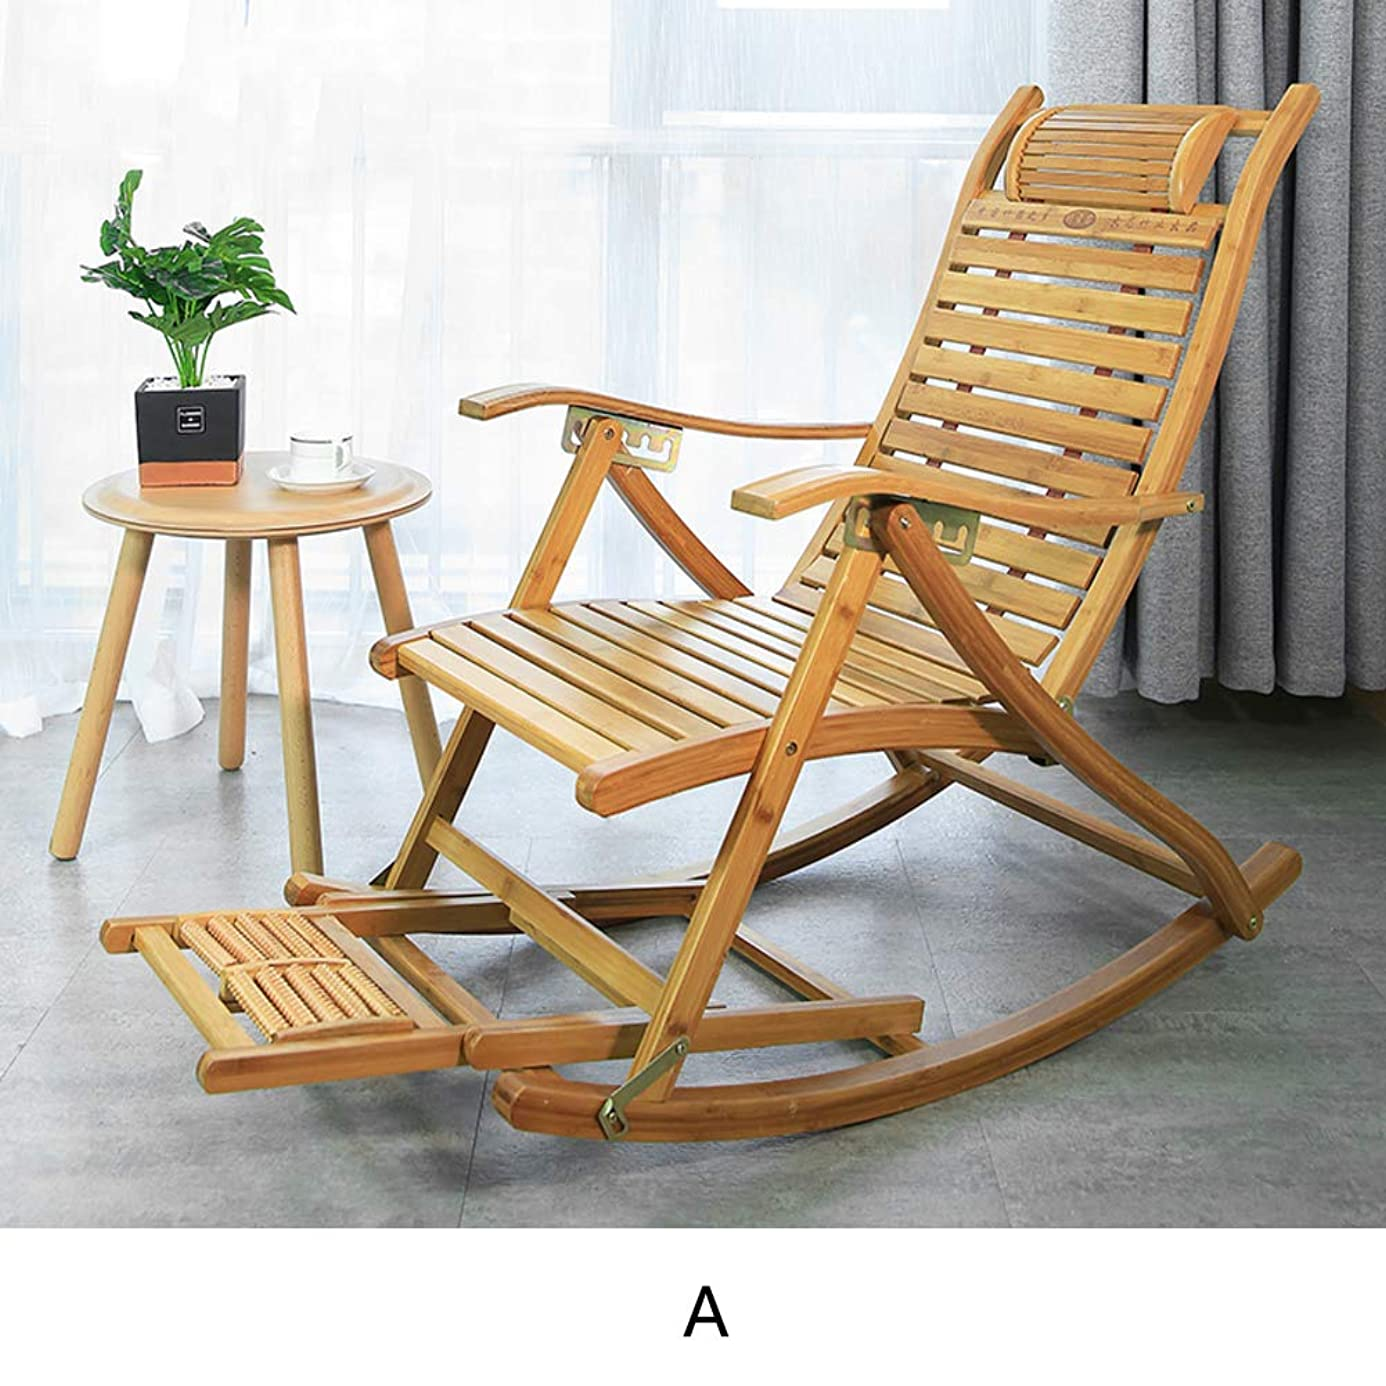 XIAOMEI Folding Rocking Chair,Natural Bamboo Lounger with Foot Rest Zero Gravity Adjustable Reclining Back for Adults Old People The Aged